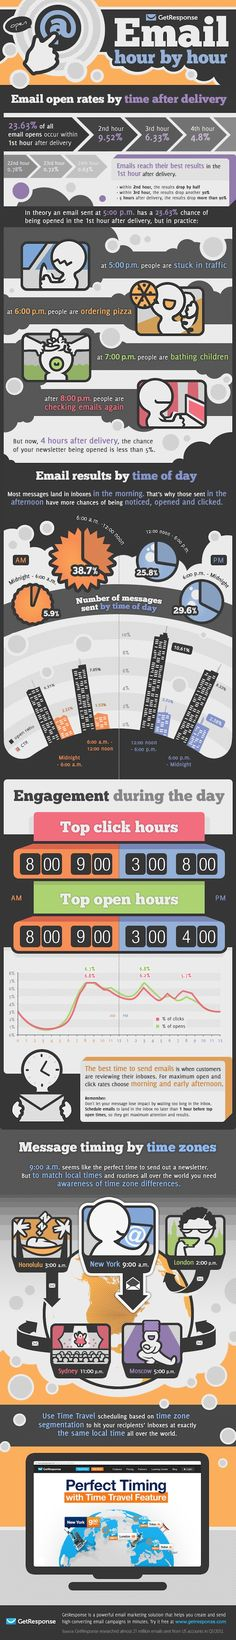 Email hour by hour #infographic